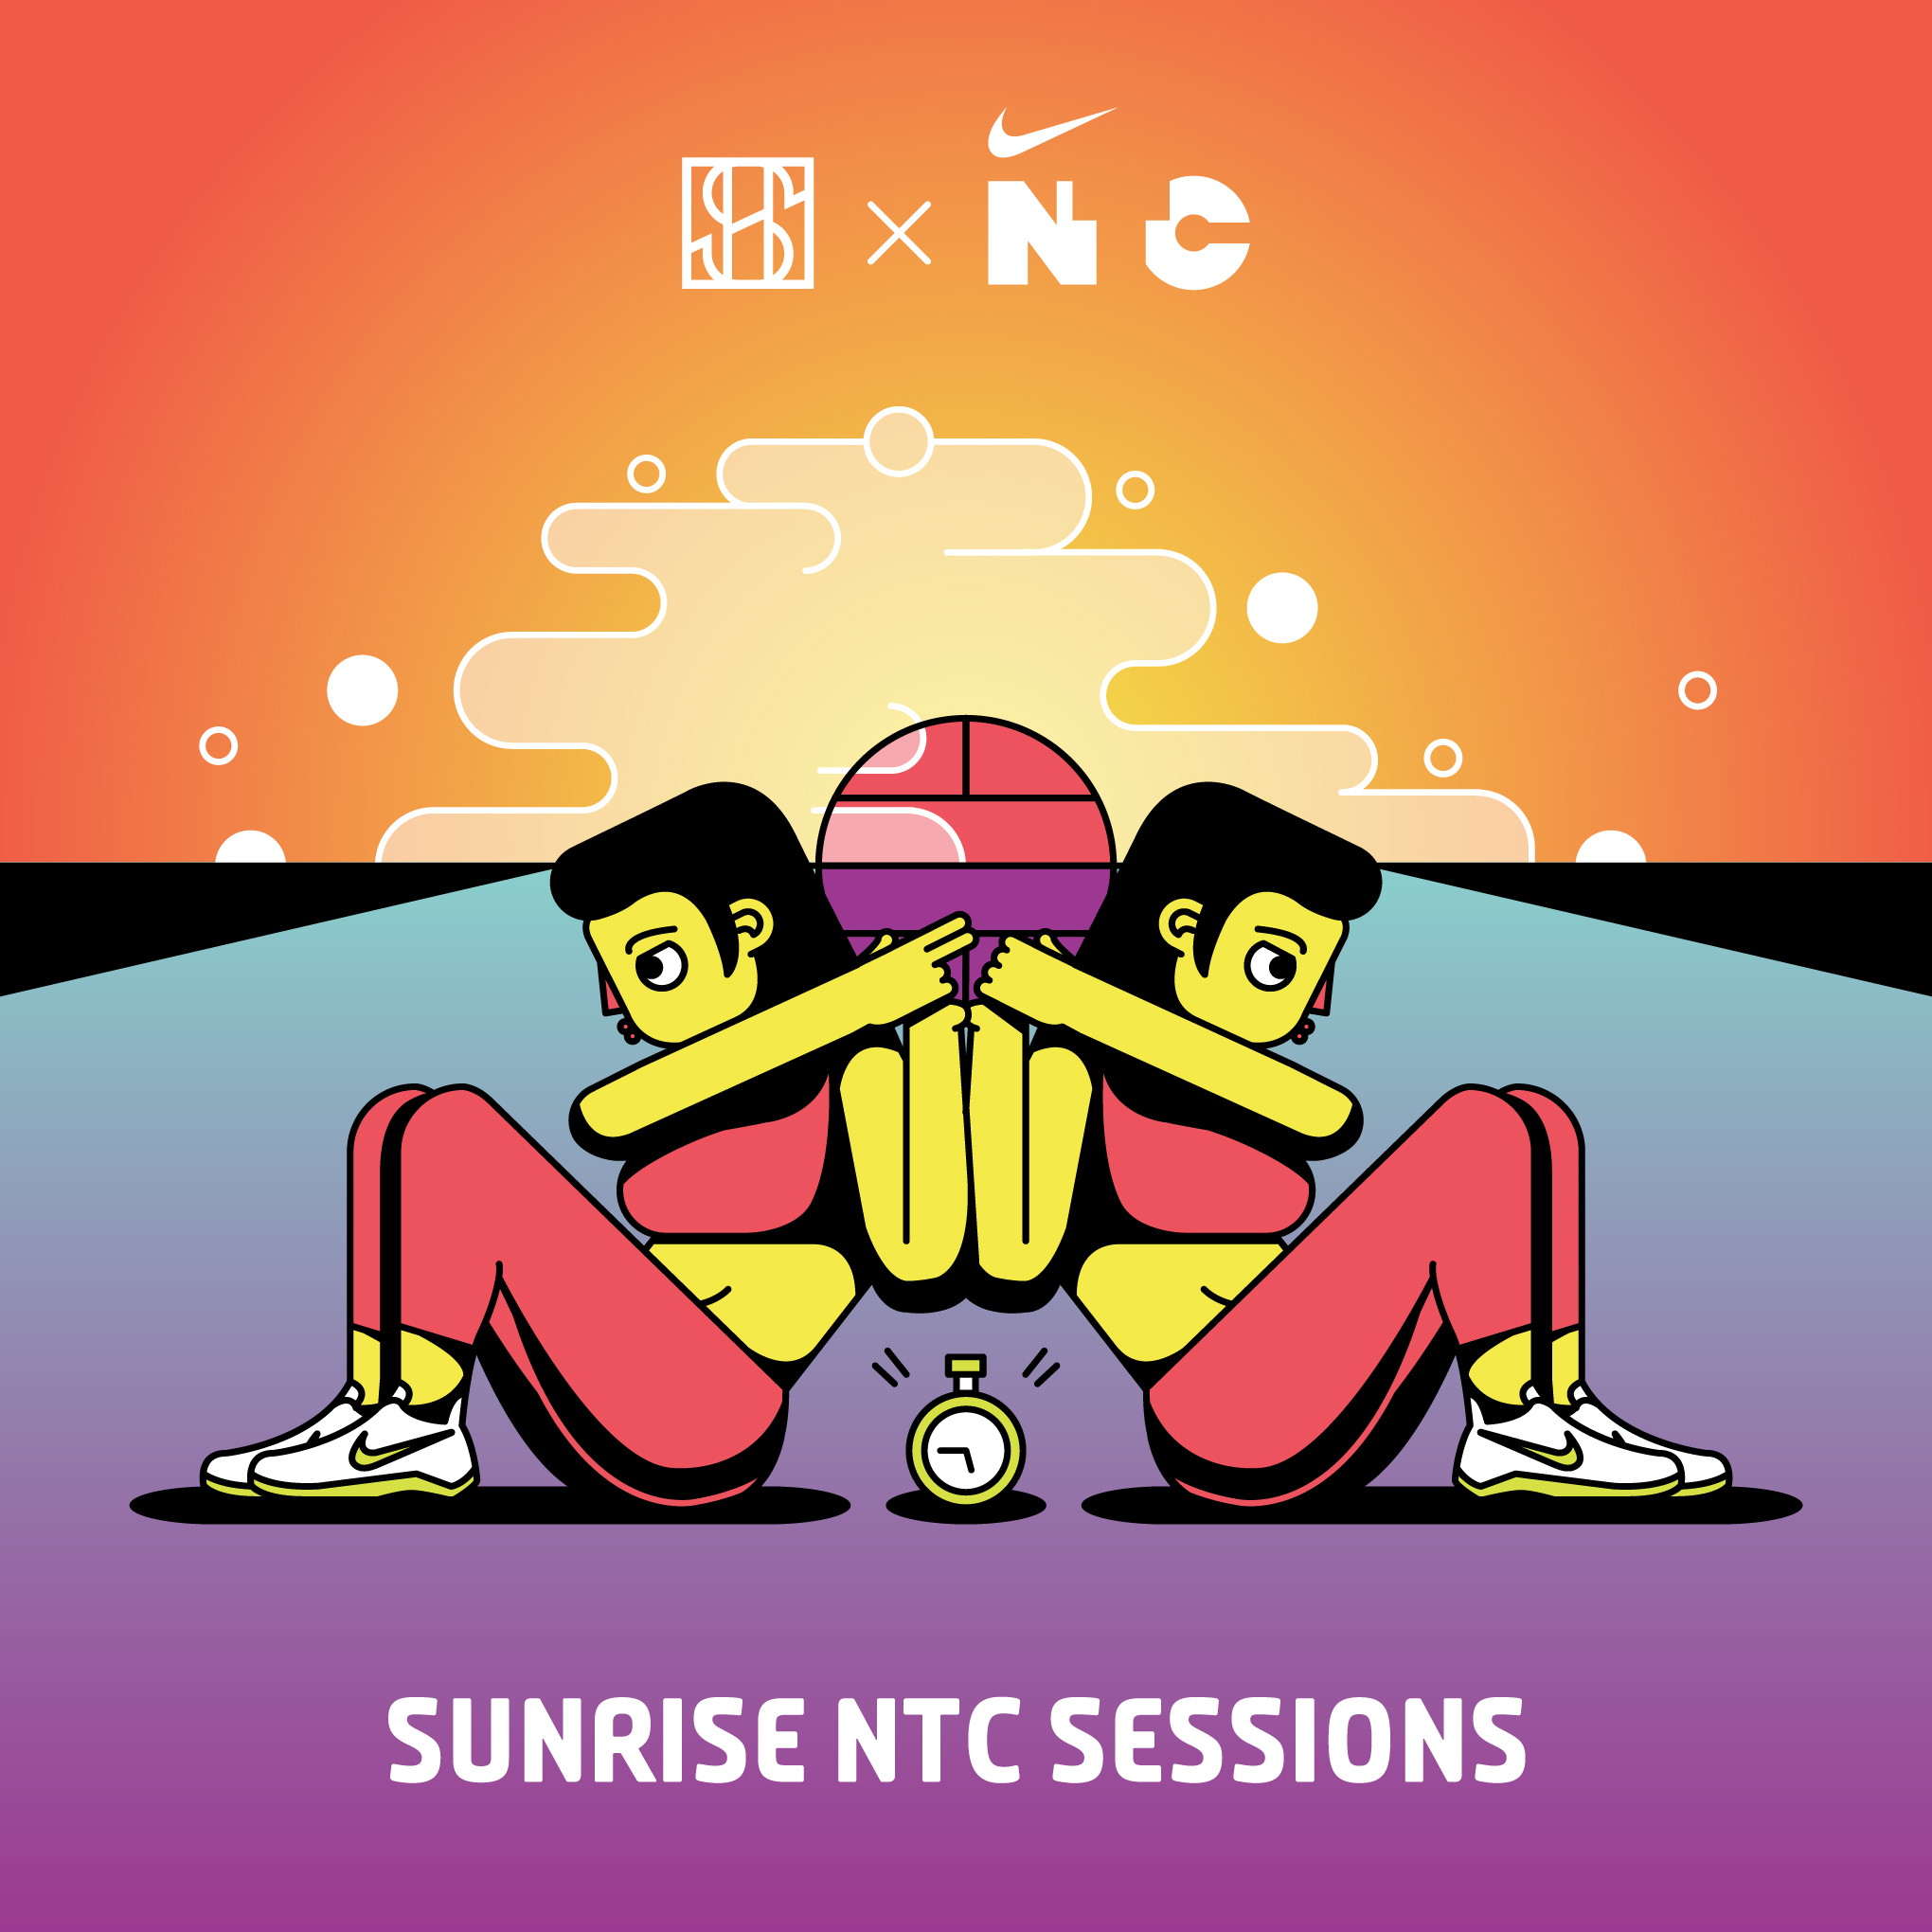 Sidewalk Hustle x Nike NTC Sunrise Sessions Square